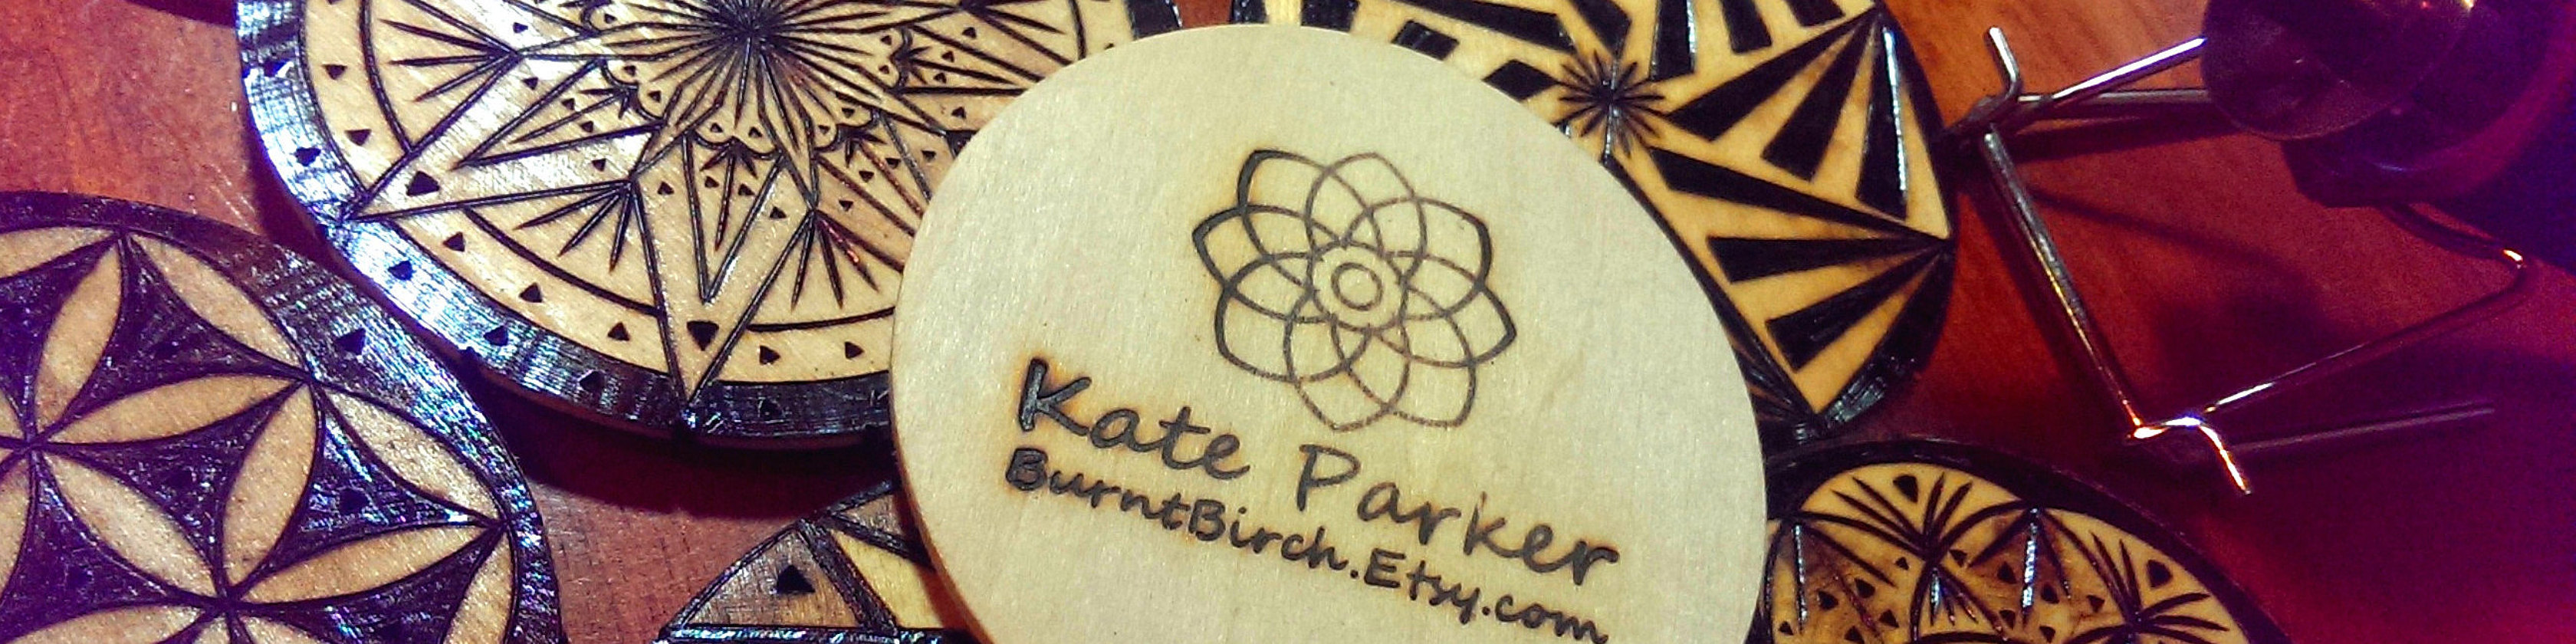 BurntBirch Pyrography Art